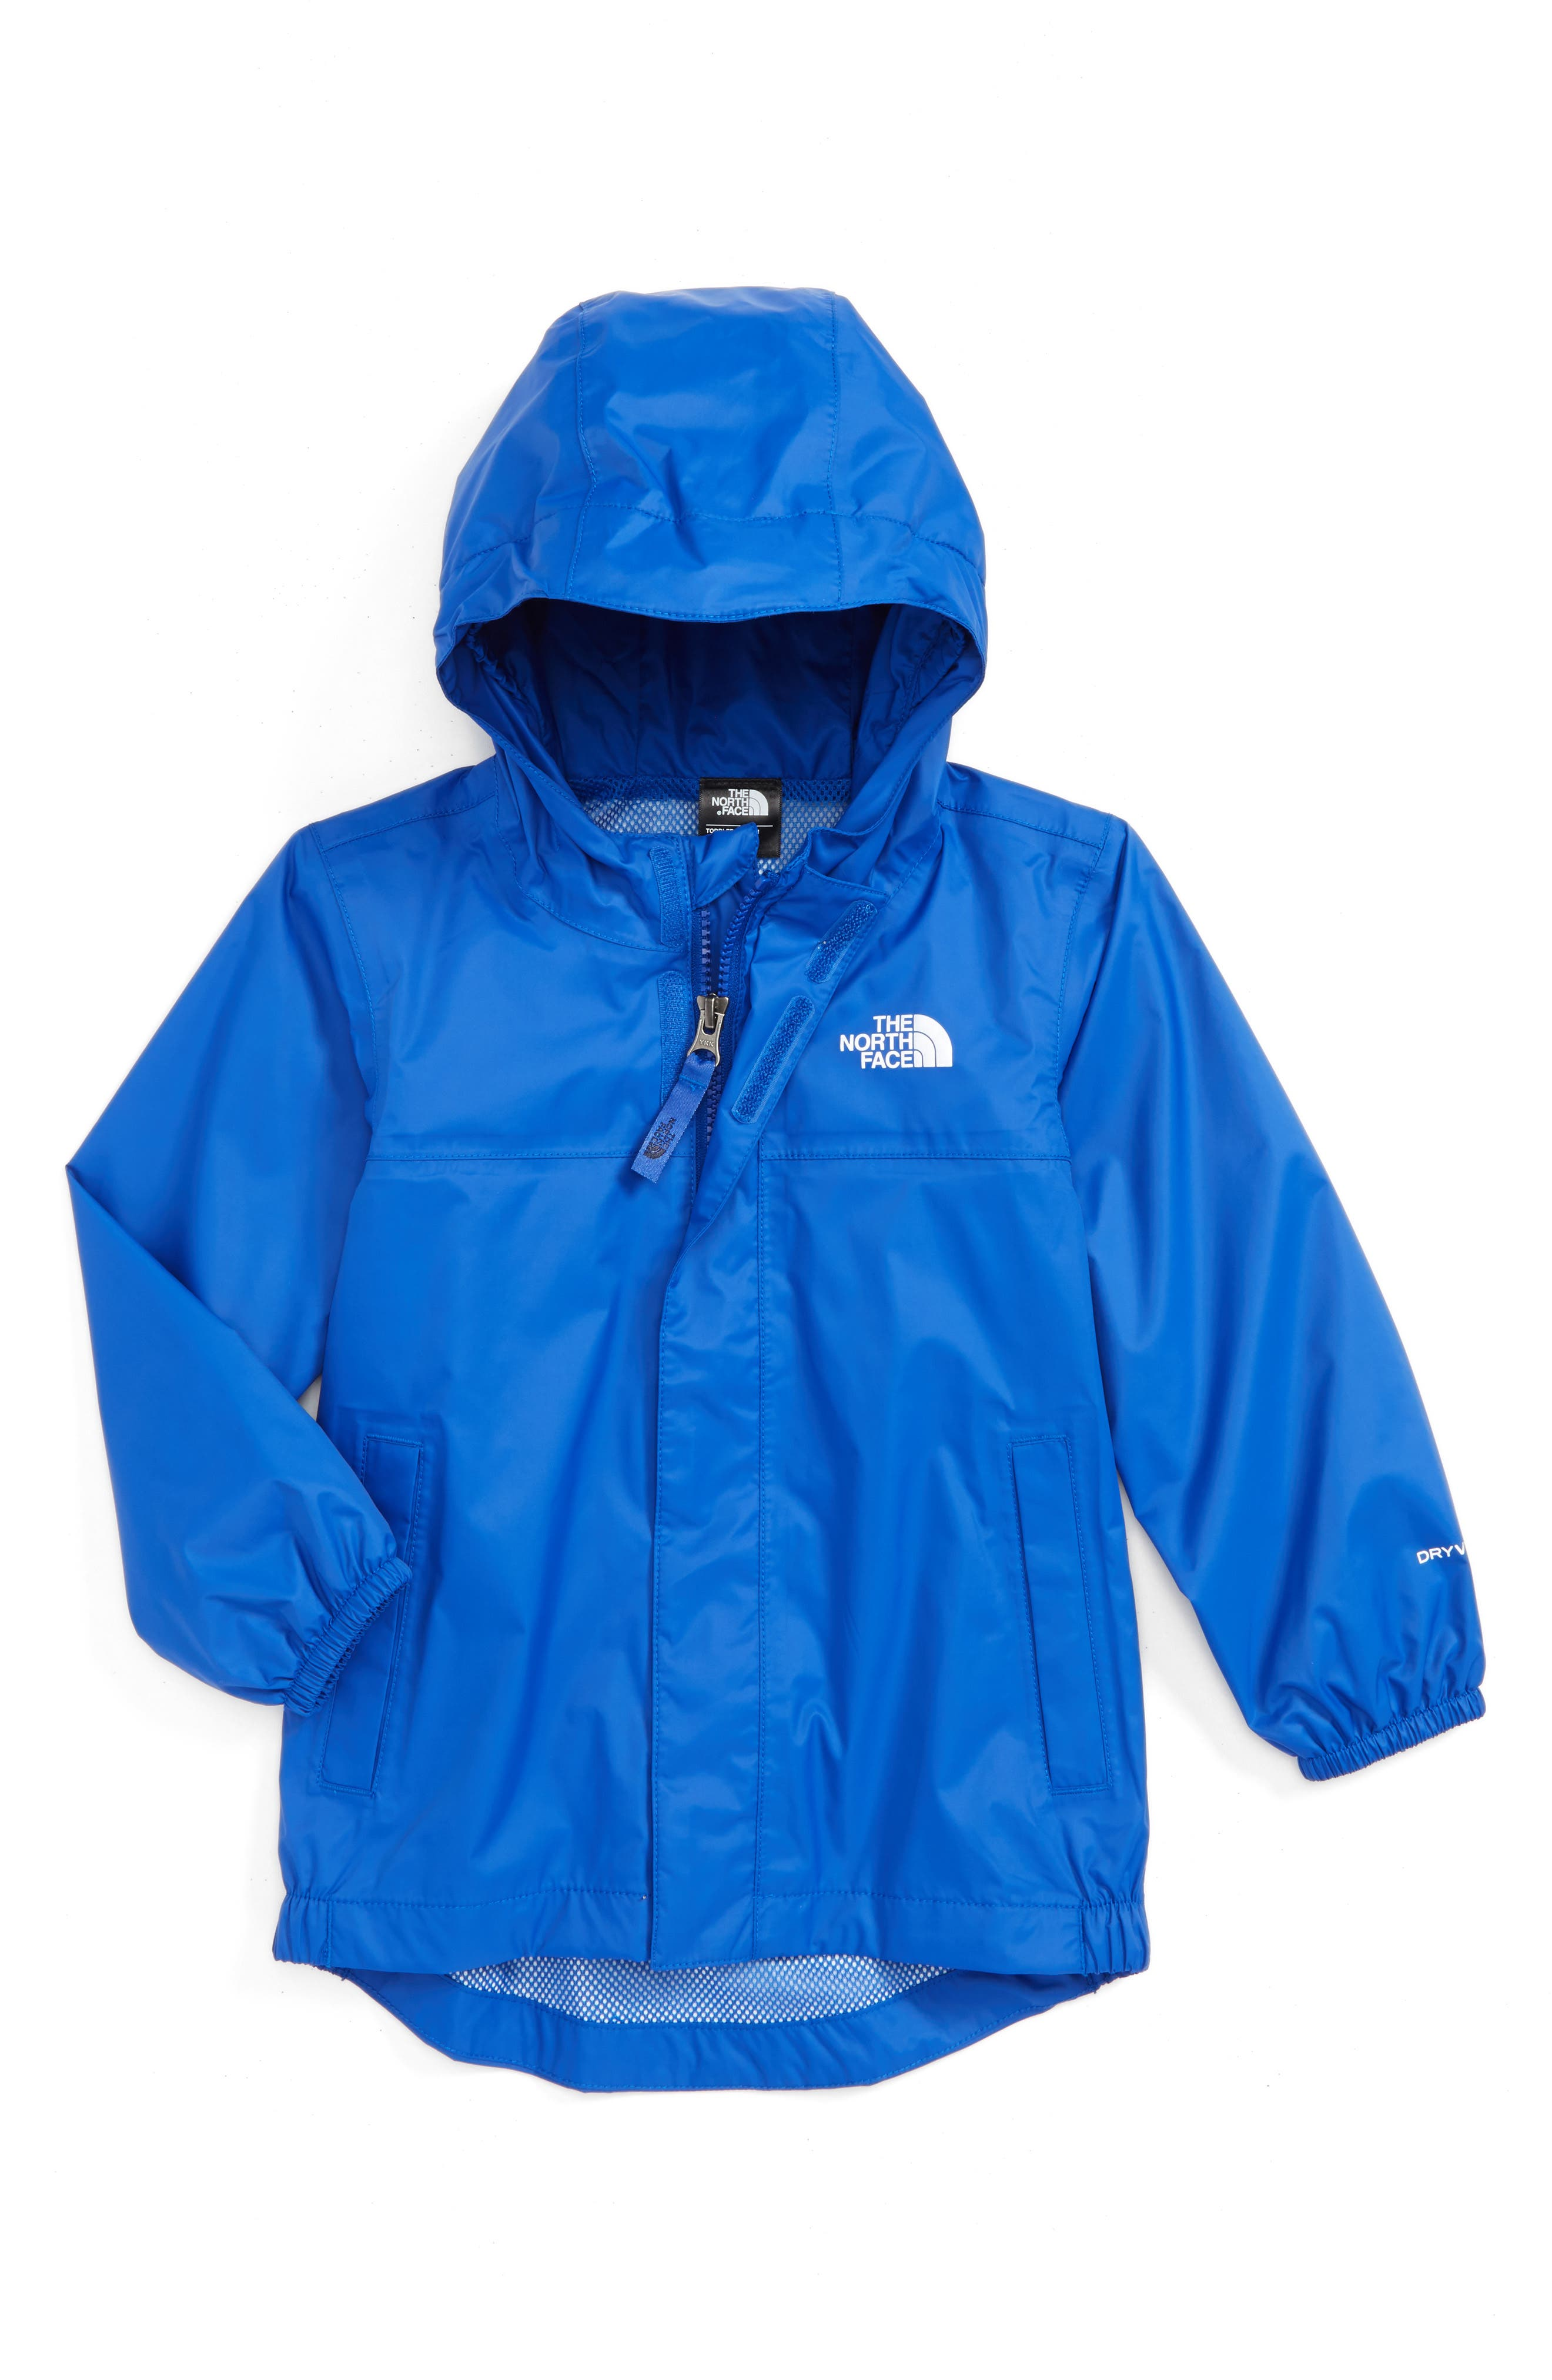 Main Image - The North Face Tailout Waterproof/Windproof Hooded Rain Jacket (Toddler Boys & Little Boys)